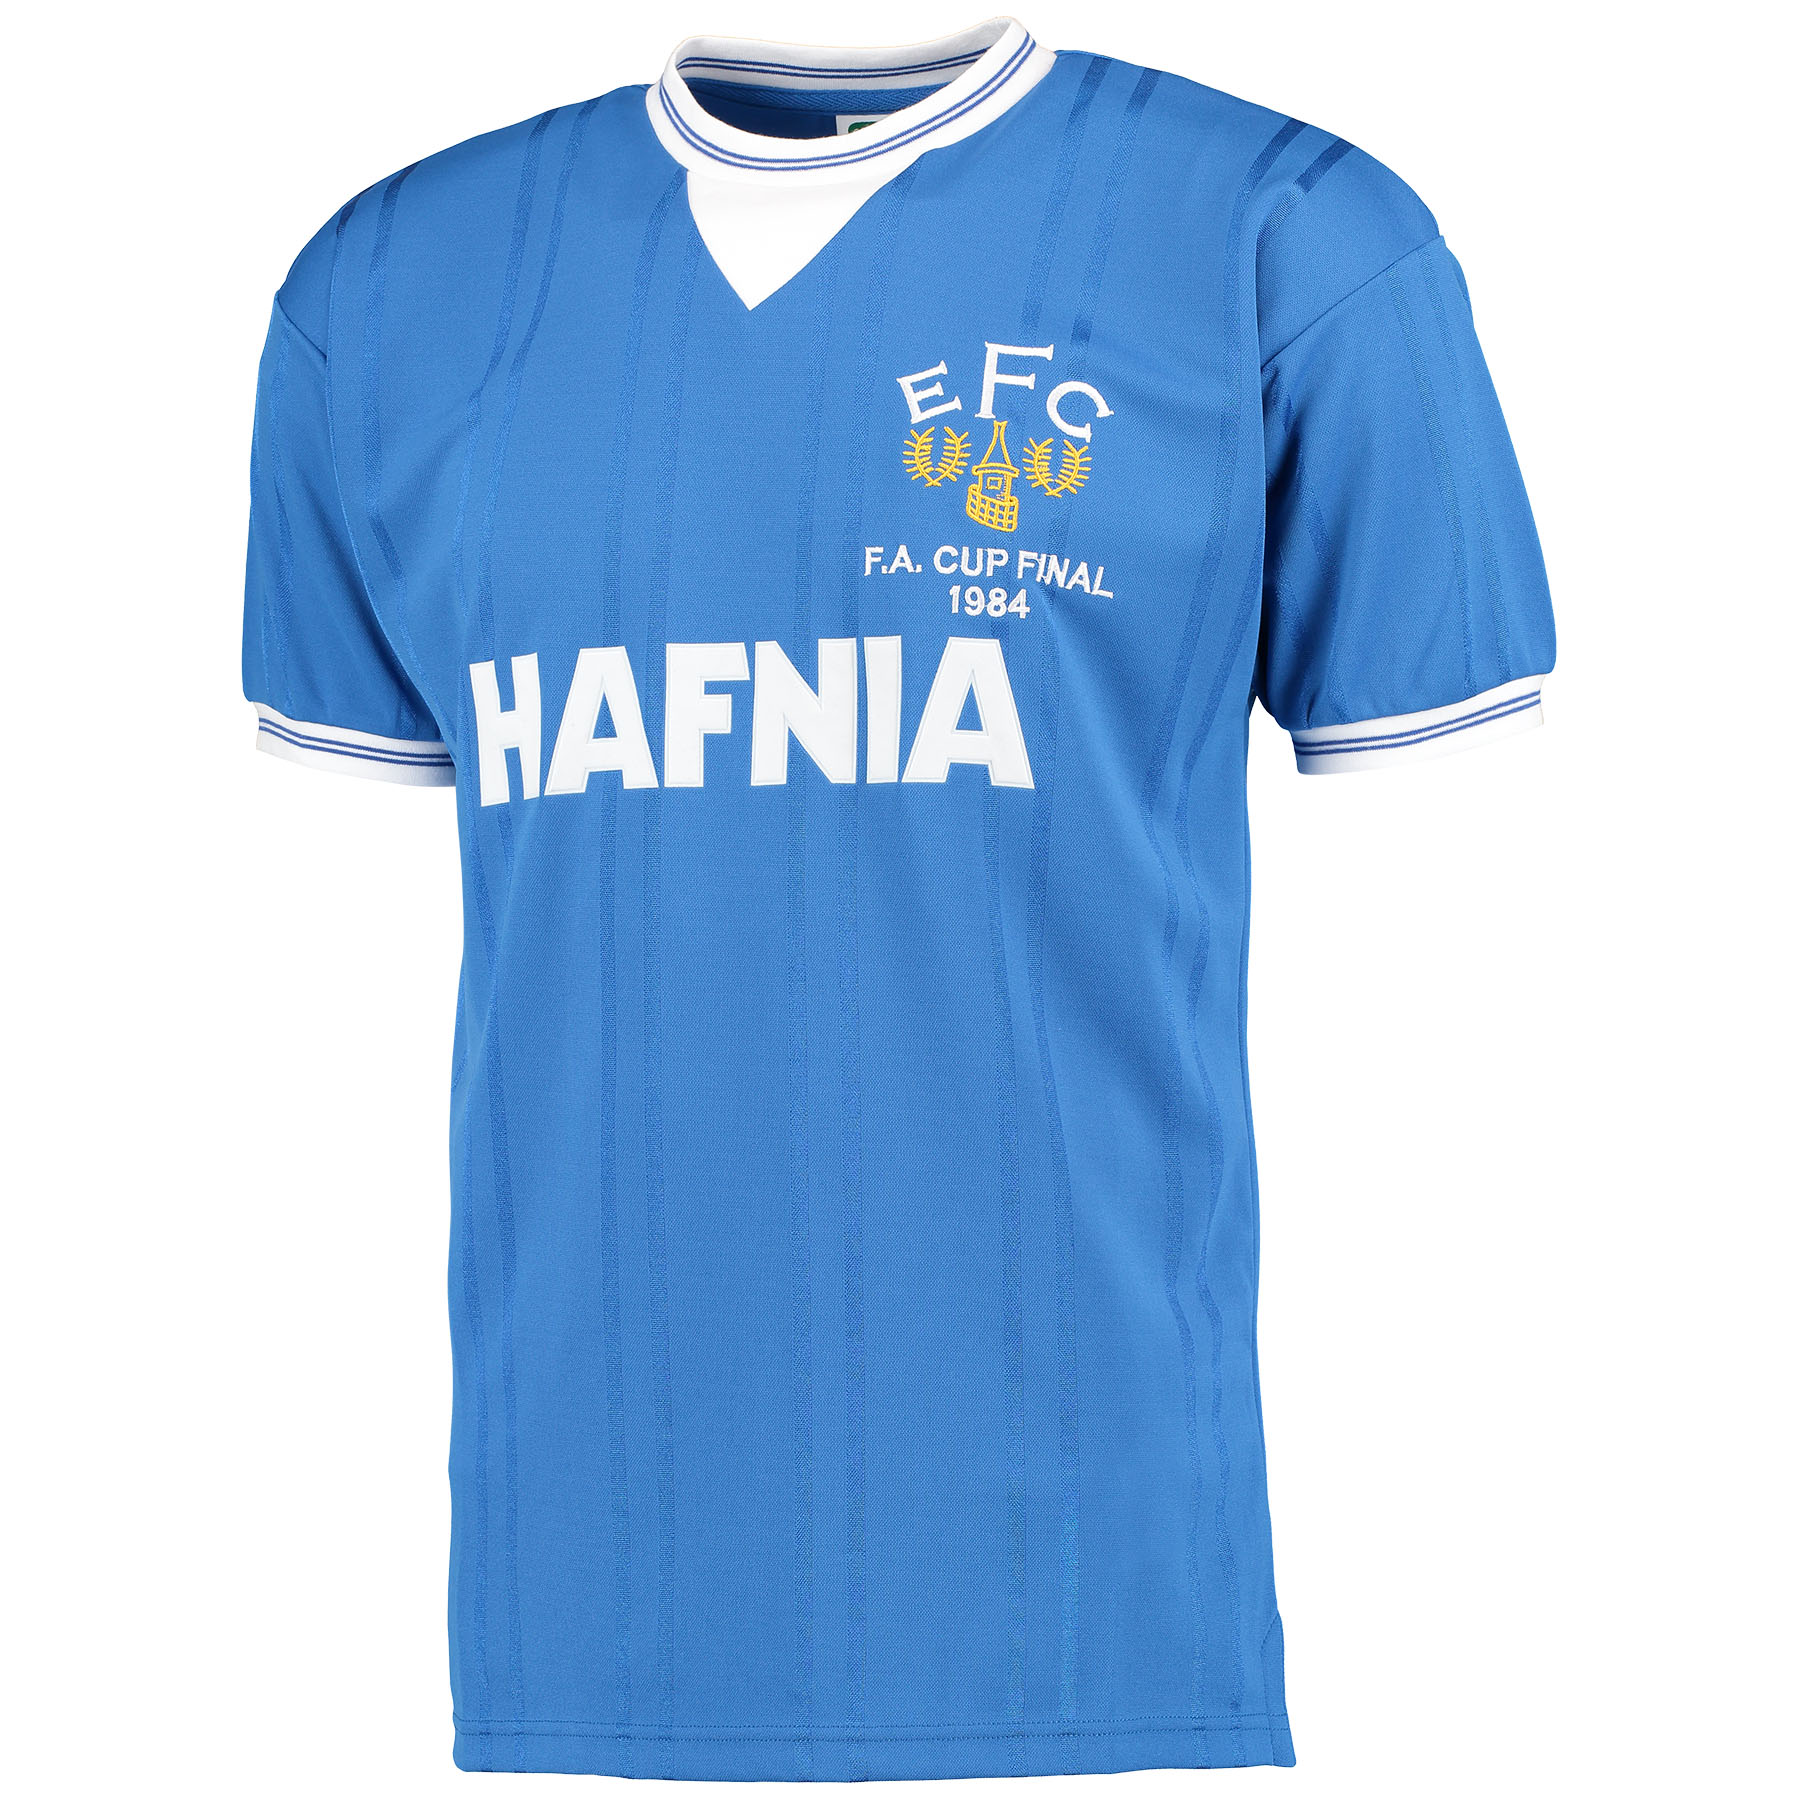 Everton 1984 FA Cup Final Shirt - Blue